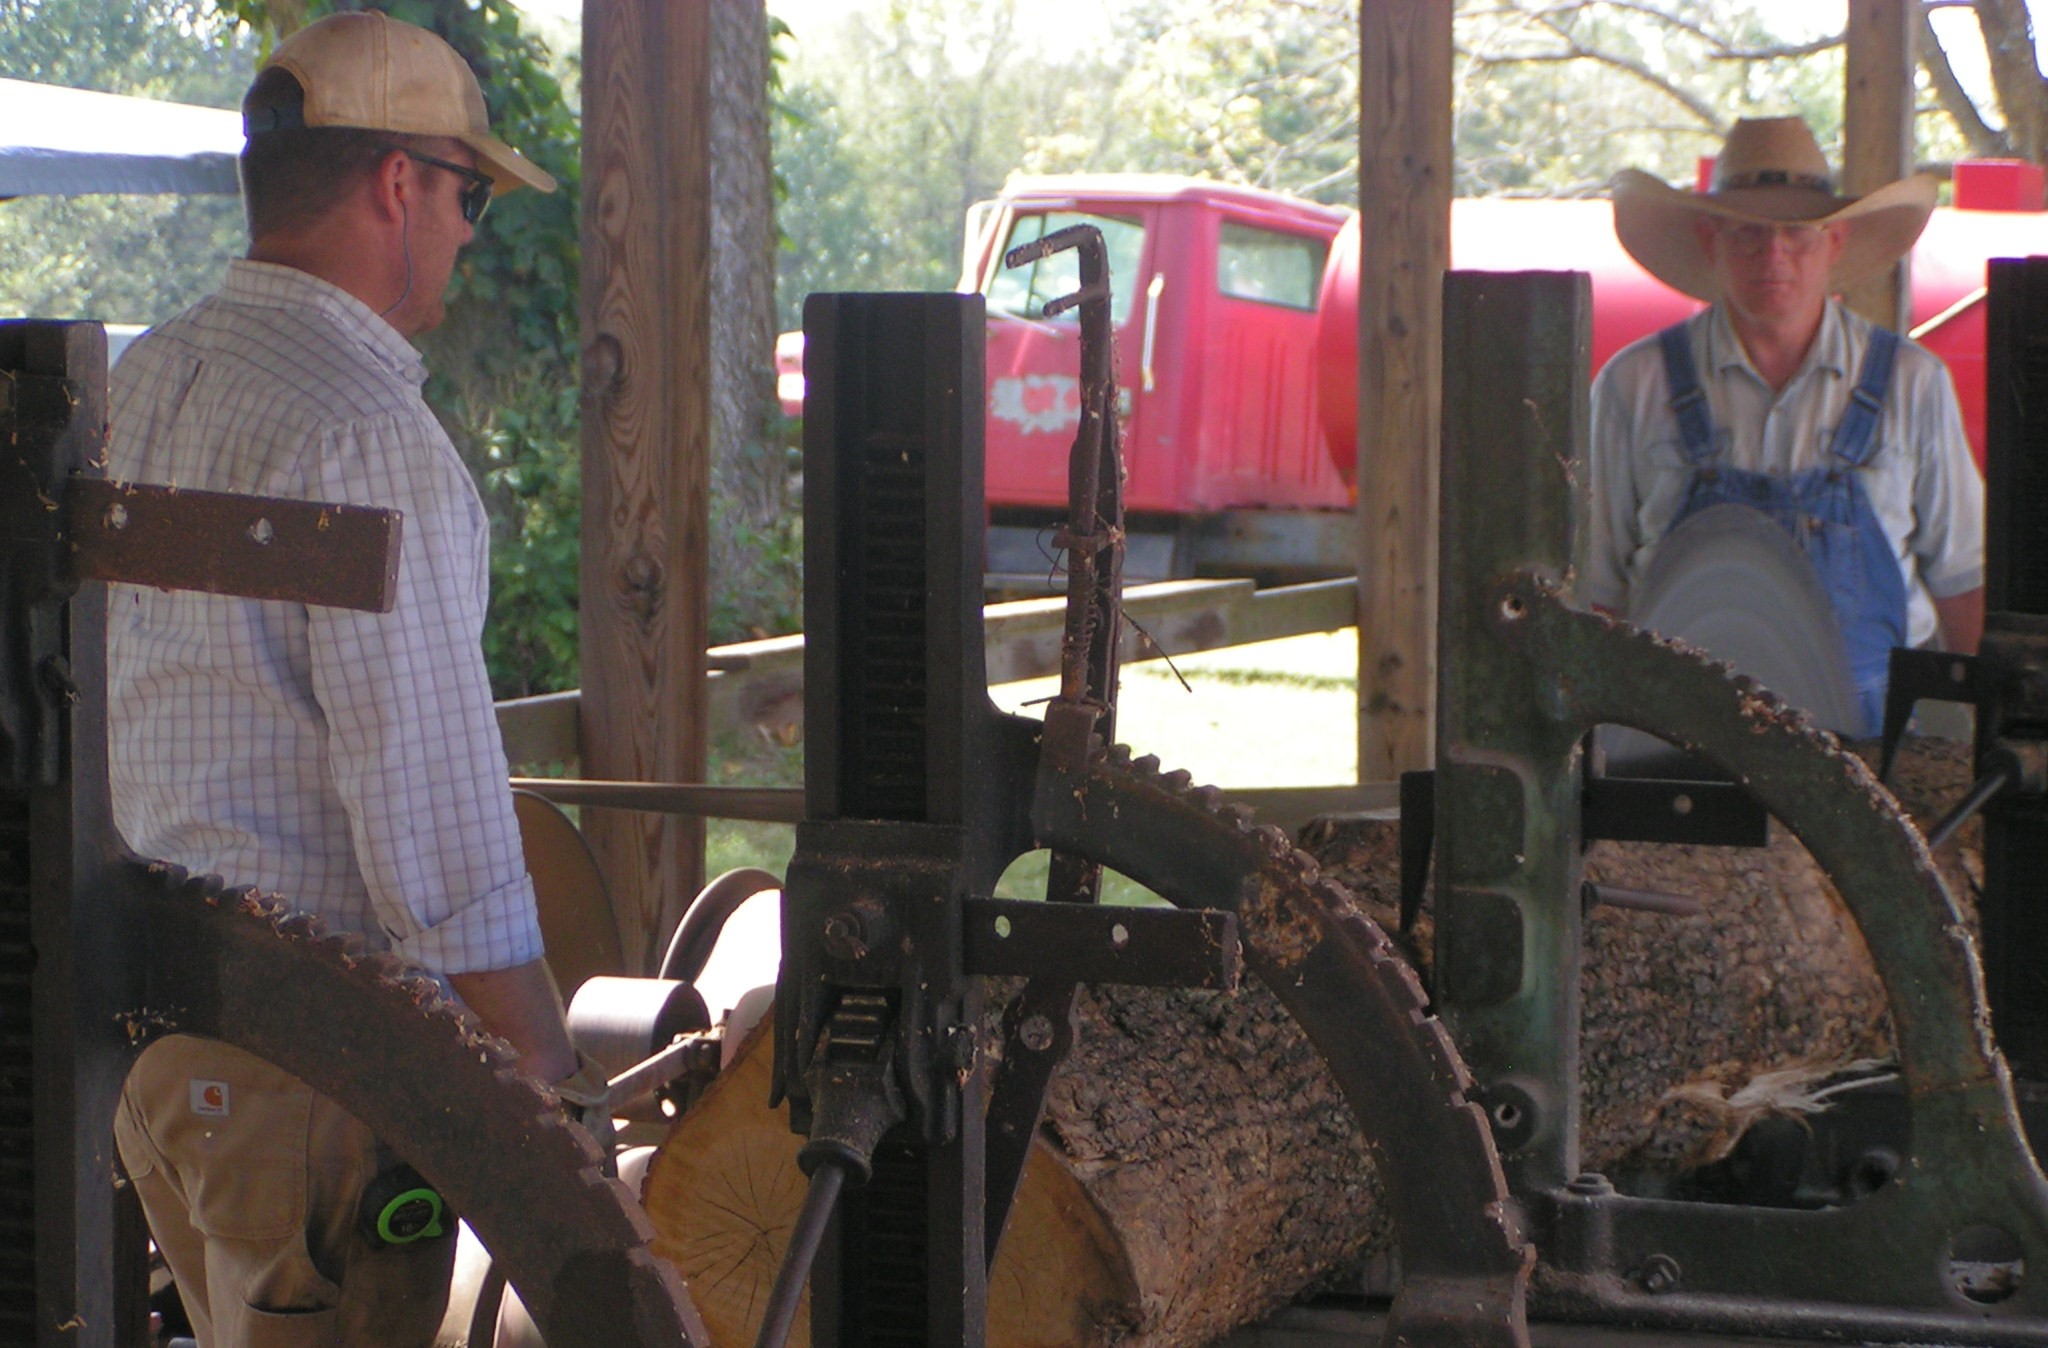 Sawmill exhibition in 2019